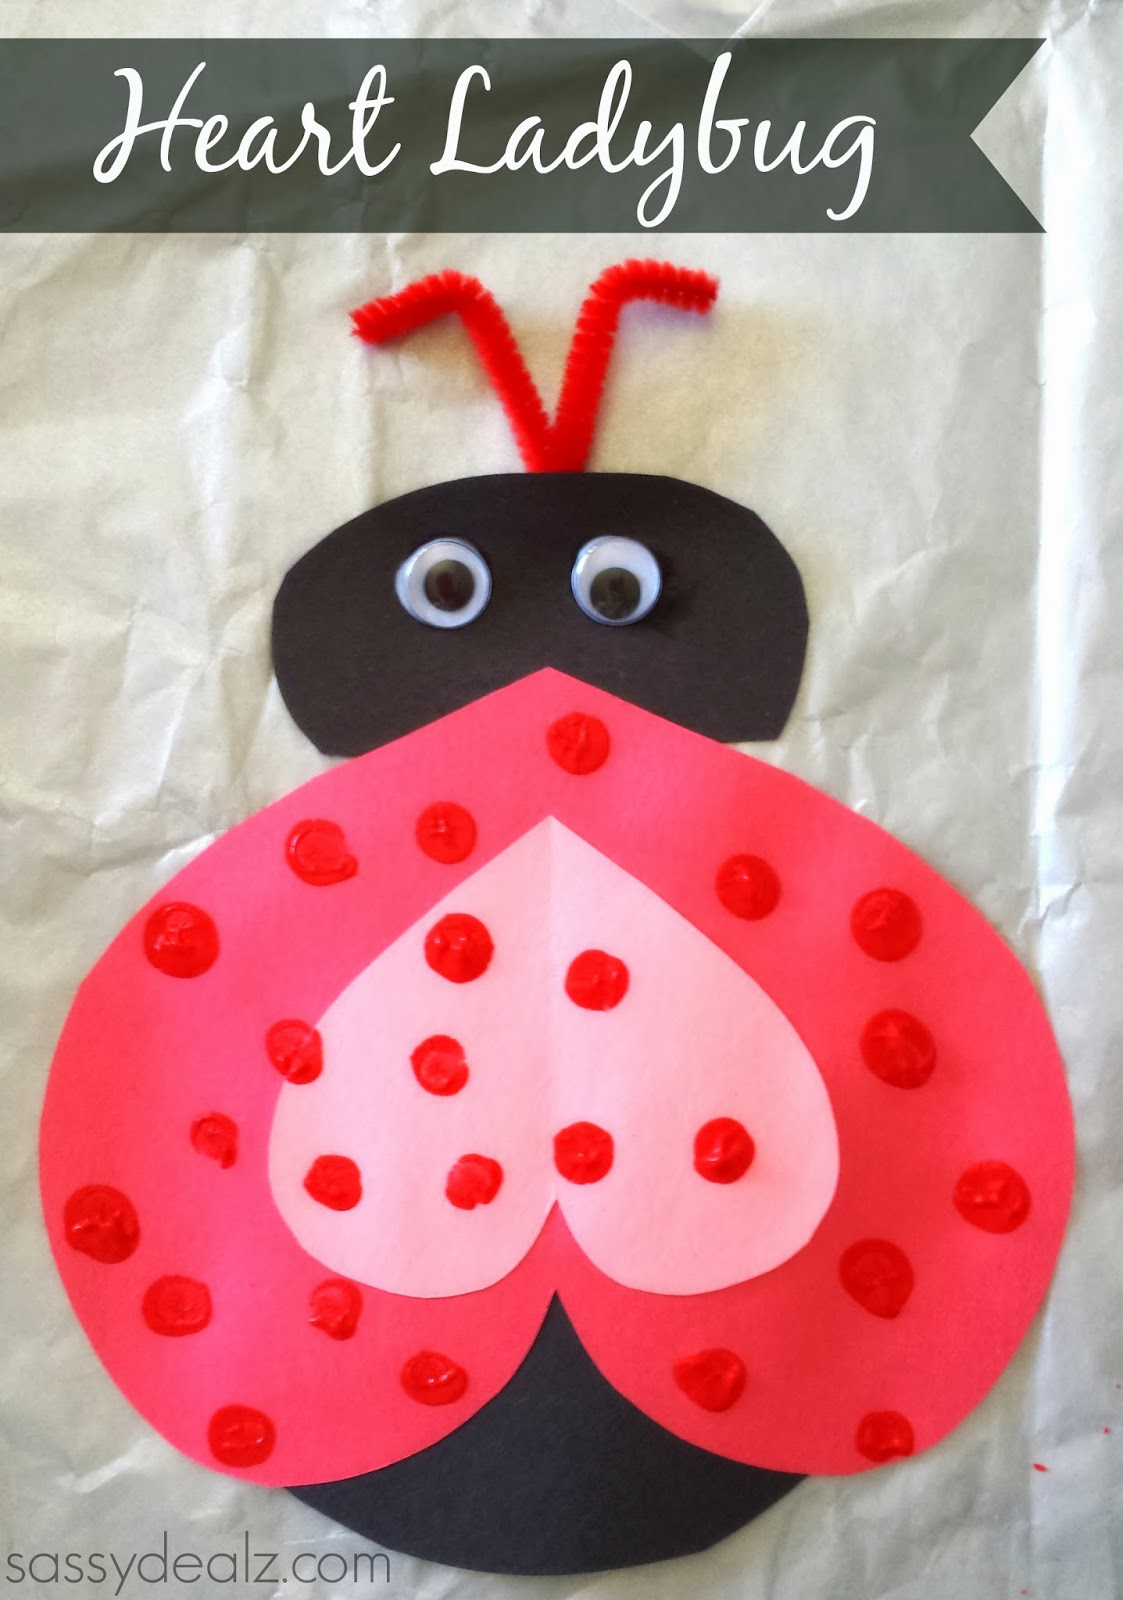 Heart ladybug valentines day craft for kids crafty morning for Valentines day art and crafts for preschoolers